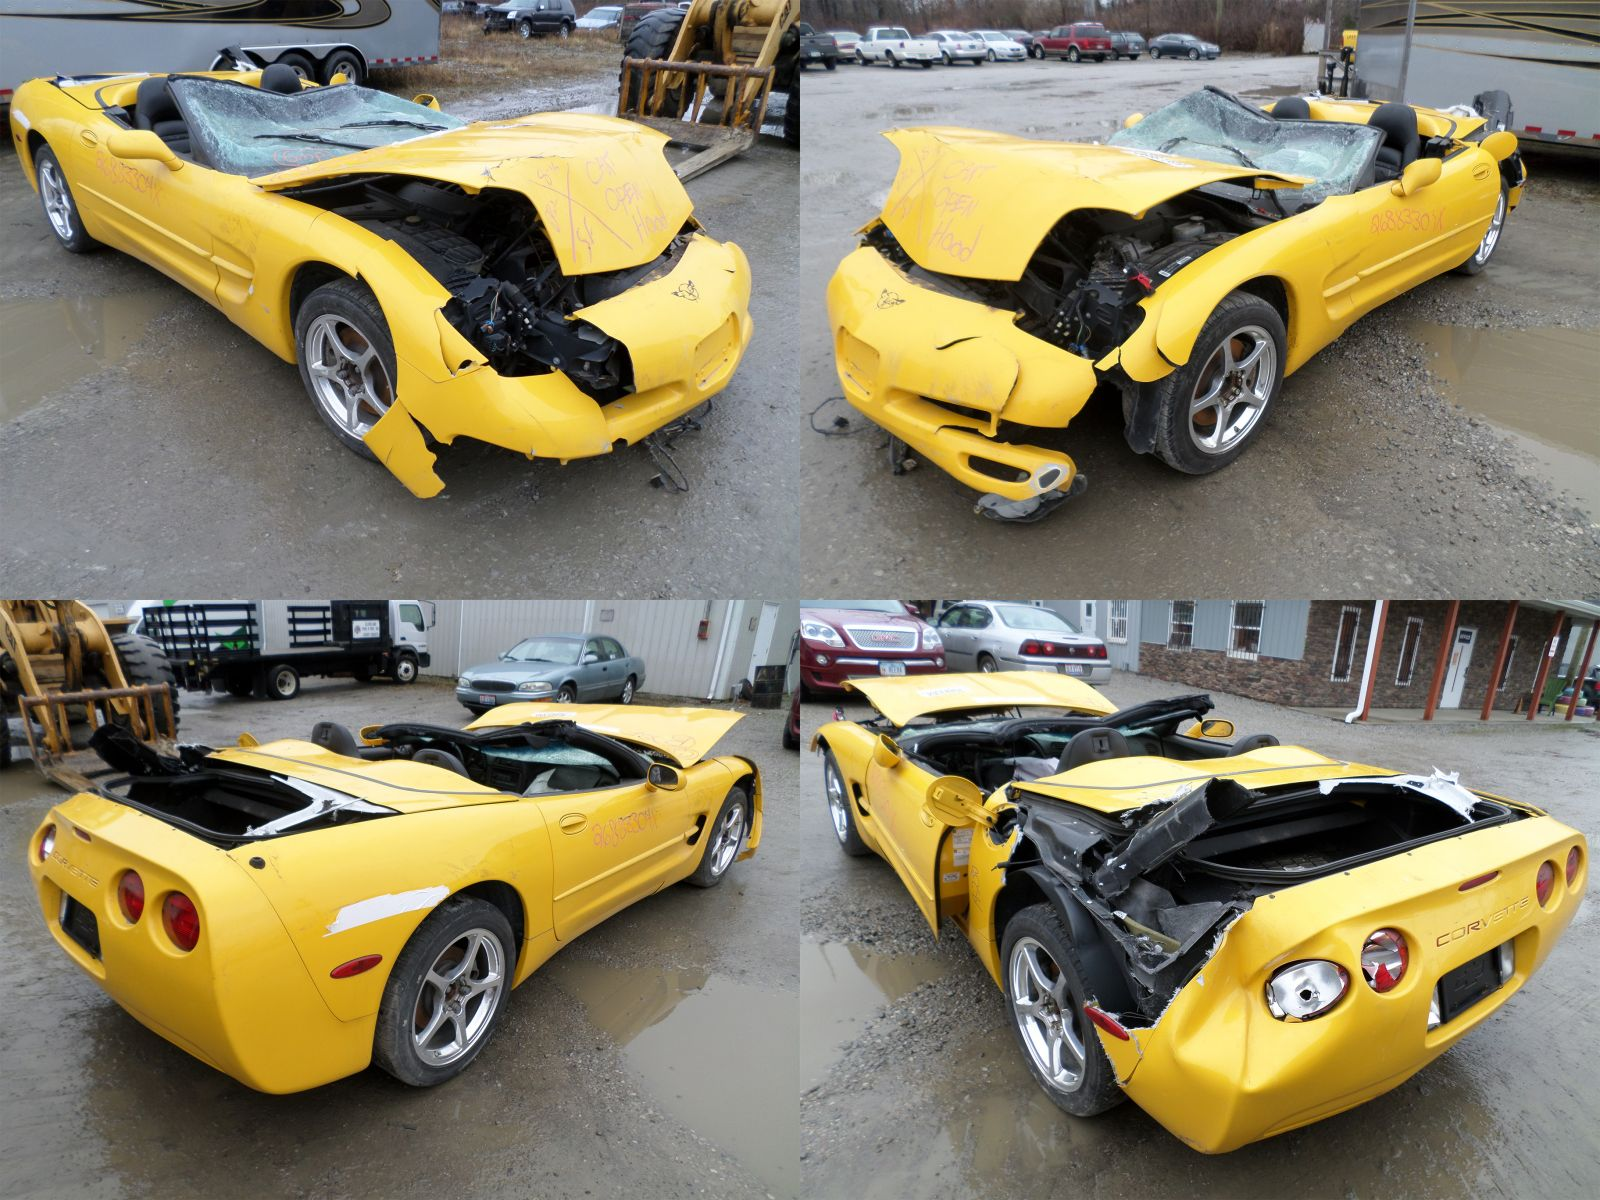 Wrecked Cars For Sale >> 2002 Yellow Chevrolet Corvette C5 Convertible - Cleveland Power & Performance